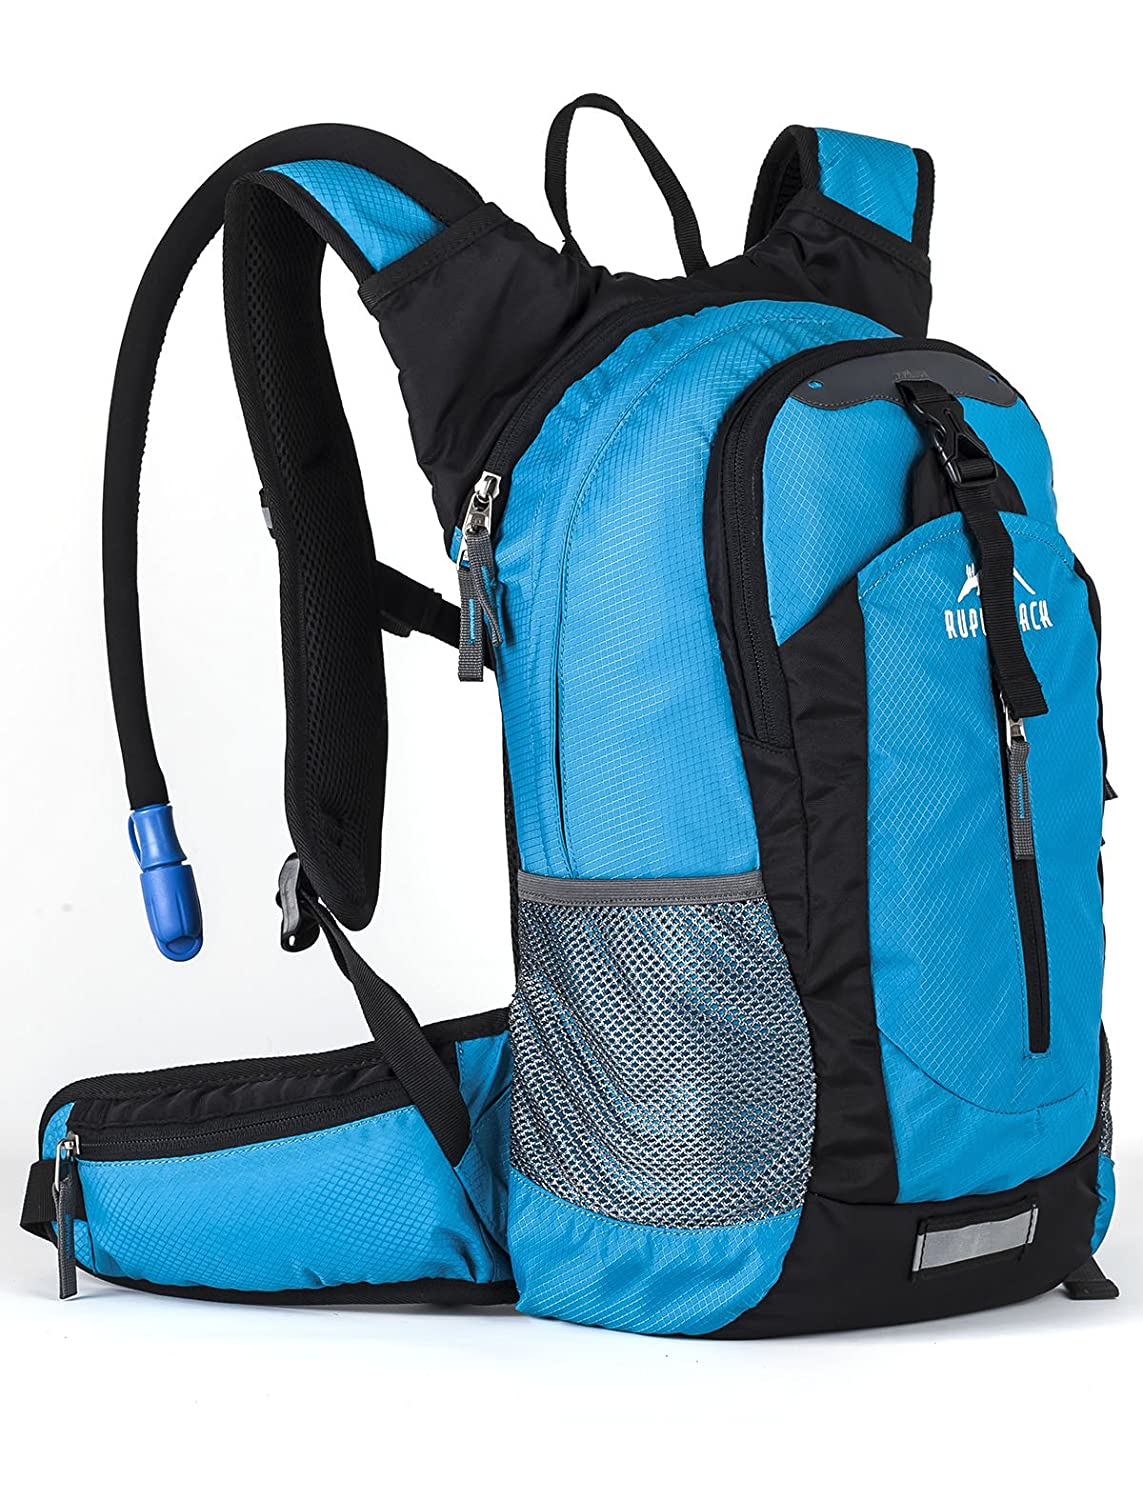 Insulated Hydration Backpack Pack with 2.5L BPA FREE Bladder - Keeps Liquid Cool up to 4 Hours, Lightweight Daypack Water Backpack For Hiking Running Cycling Camping, 18L RUPUMPACK HP-0720-18LHYPACK-UK